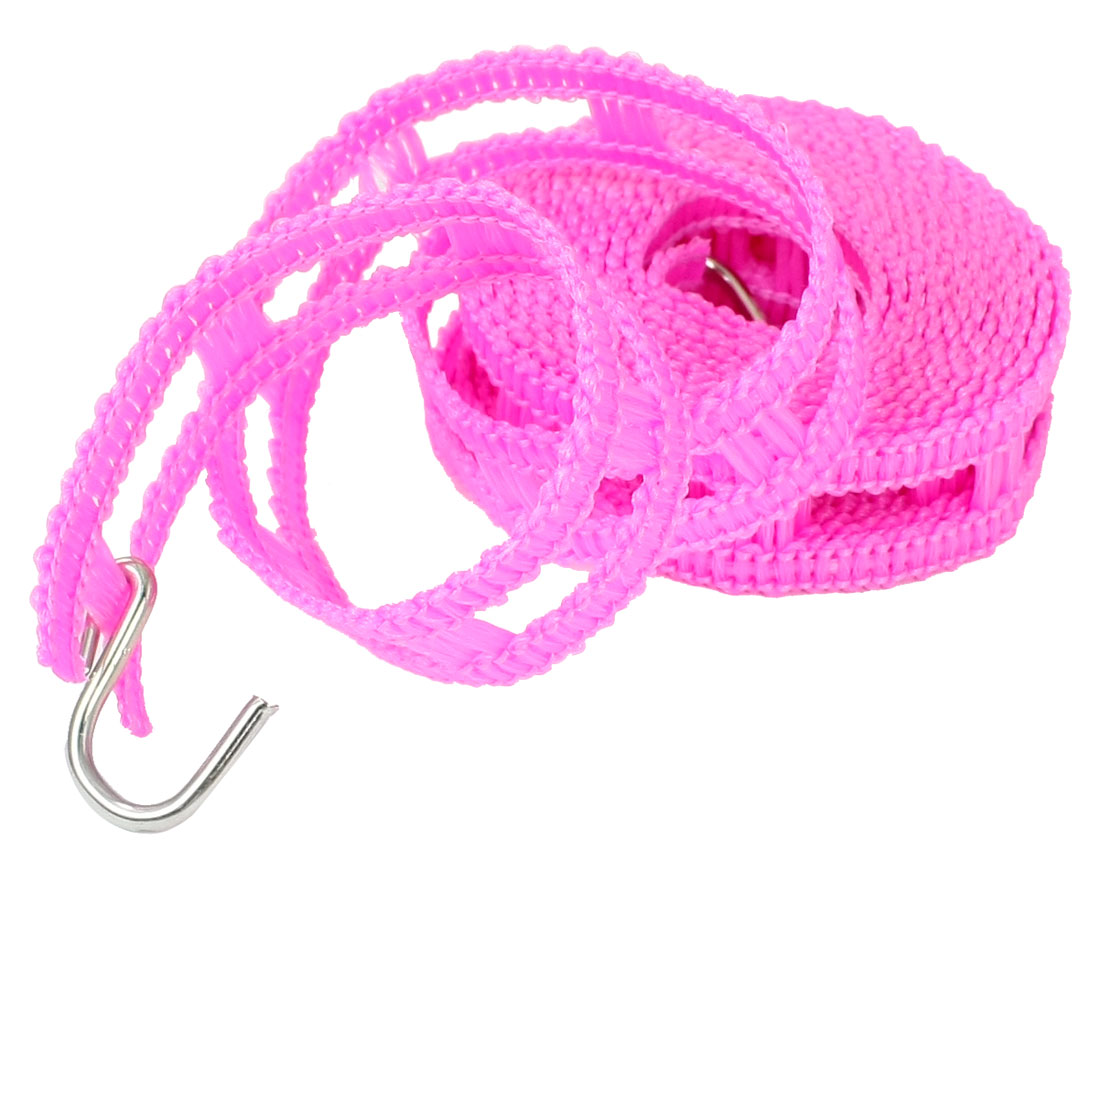 Pink Plastic 2.4M Long Outerdoor Clothes Hanging Line with 2 Hooks